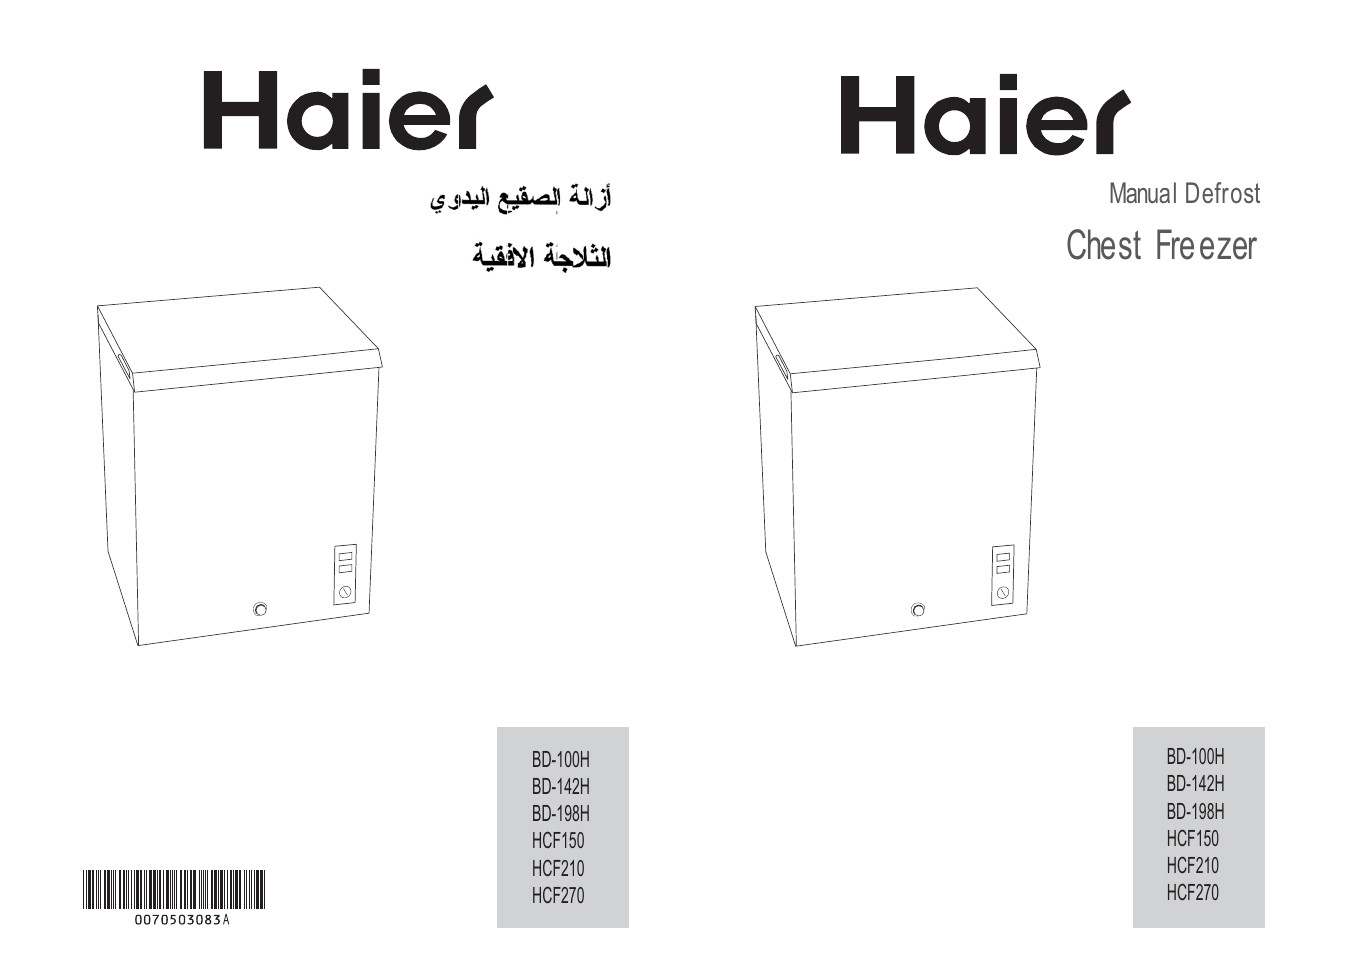 haier hcf210 user manual 14 pages also for hcf150 bd 100h rh manualsdir com haier chest freezer service manual haier chest freezer dimensions